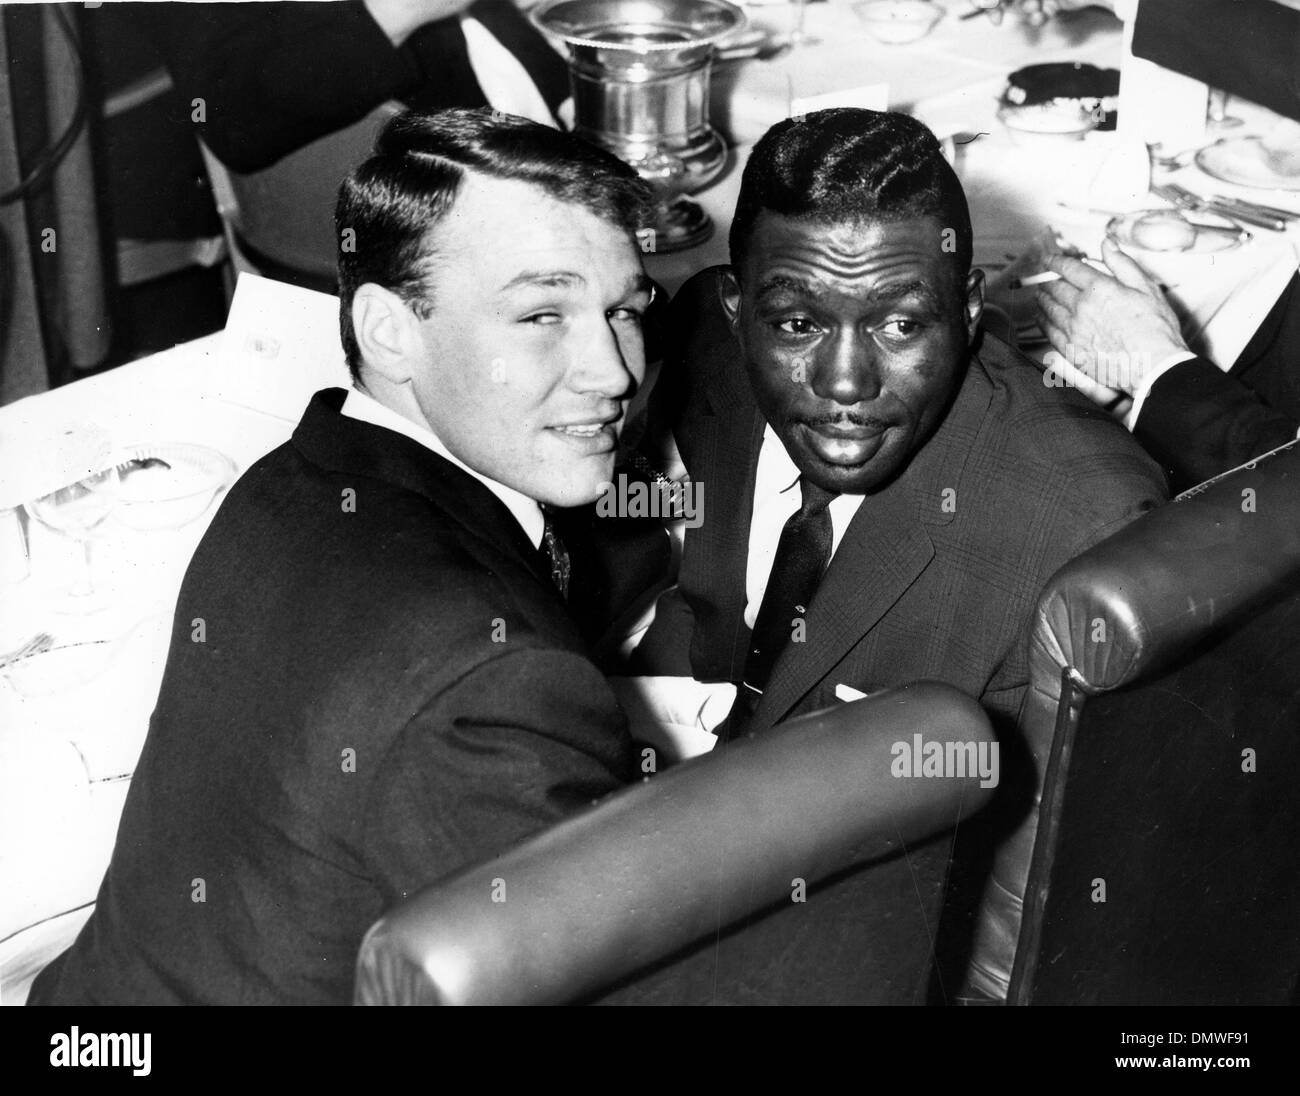 Apr. 7, 1961 - London, England, U.K. - DAVE CHARNLEY was an English lightweight boxer. Known as 'The Dartford Destroyer' the left-handed Charnley had a 10 year career lasting from 1954 to 1964. He won bronze in the 1954 Commonwealth Games in Vancouver, Canada. PICTURED: DAVE CHARNLEY, left, with world lightweight champ JOE BROWN, of the USA, at Isow's Restaurant. (Credit Image: © K - Stock Image